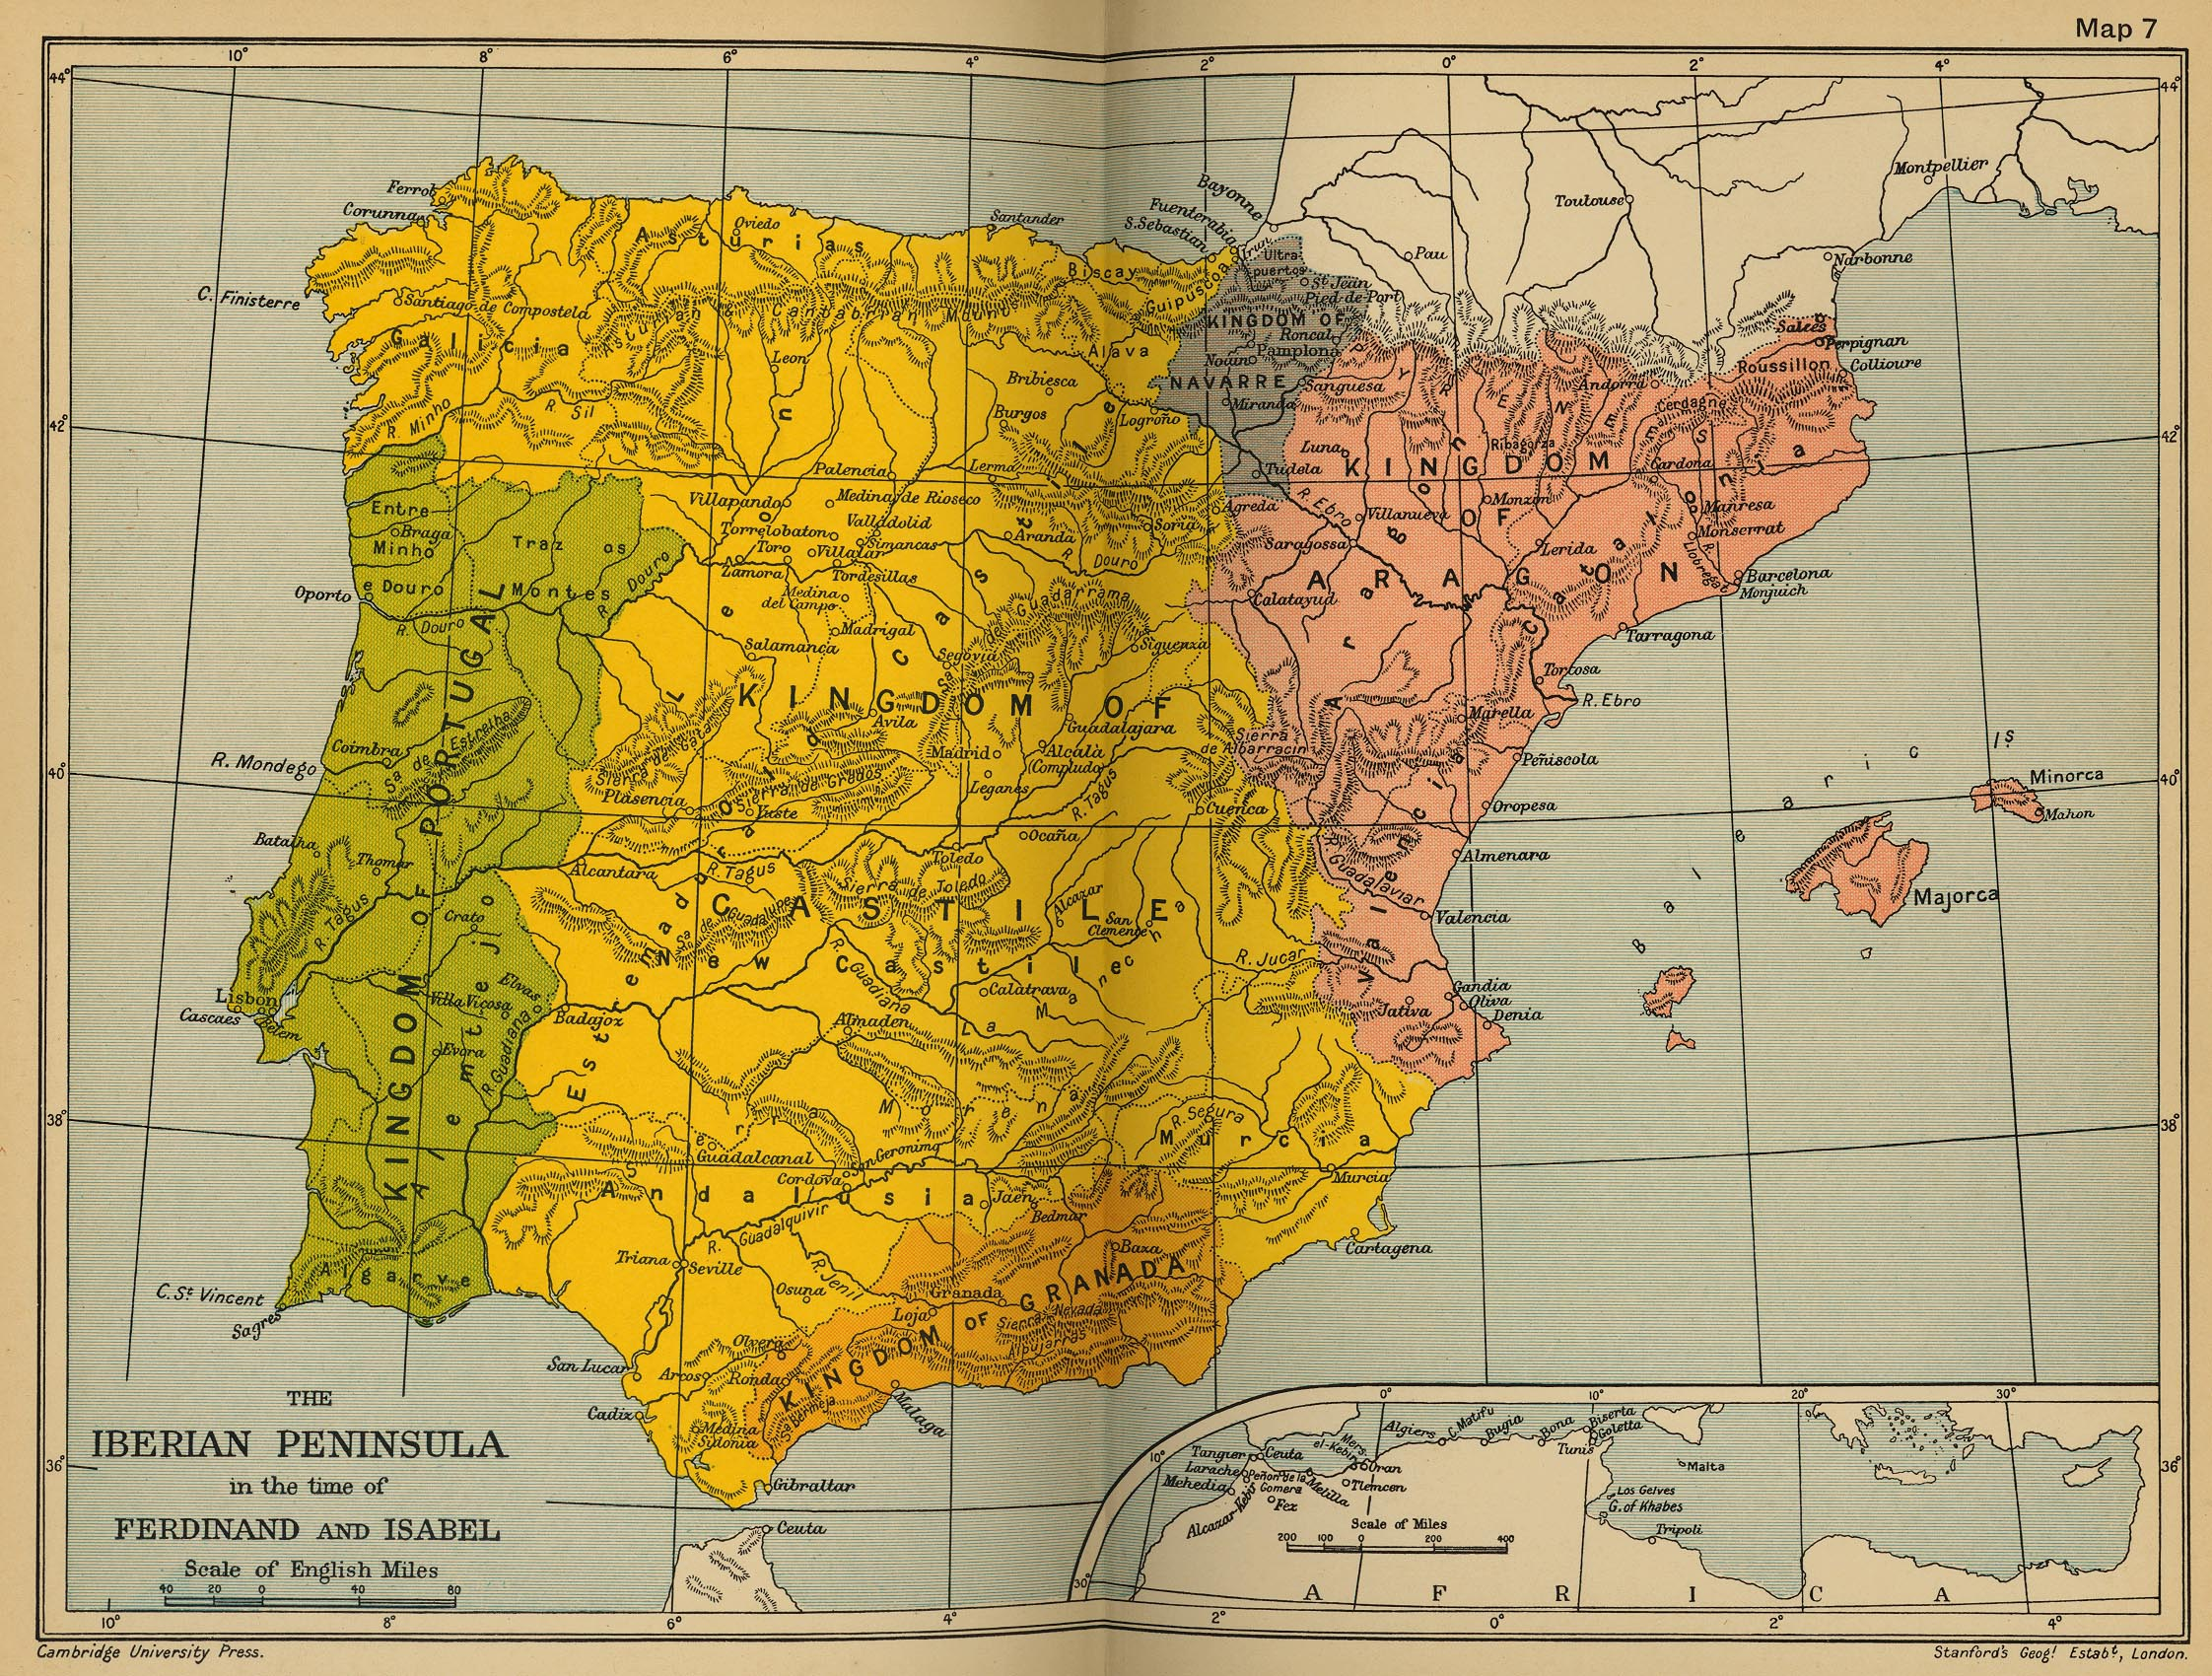 an analysis of the topic of the rulers of castile and aragon The kings of portugal, alfonso ii, of león, fernando ii, and of castile, alfonso viii, who were present at the talks, as well as reaching agreements between themselves, also decided on a common plan against the muslims which included a satisfactory.